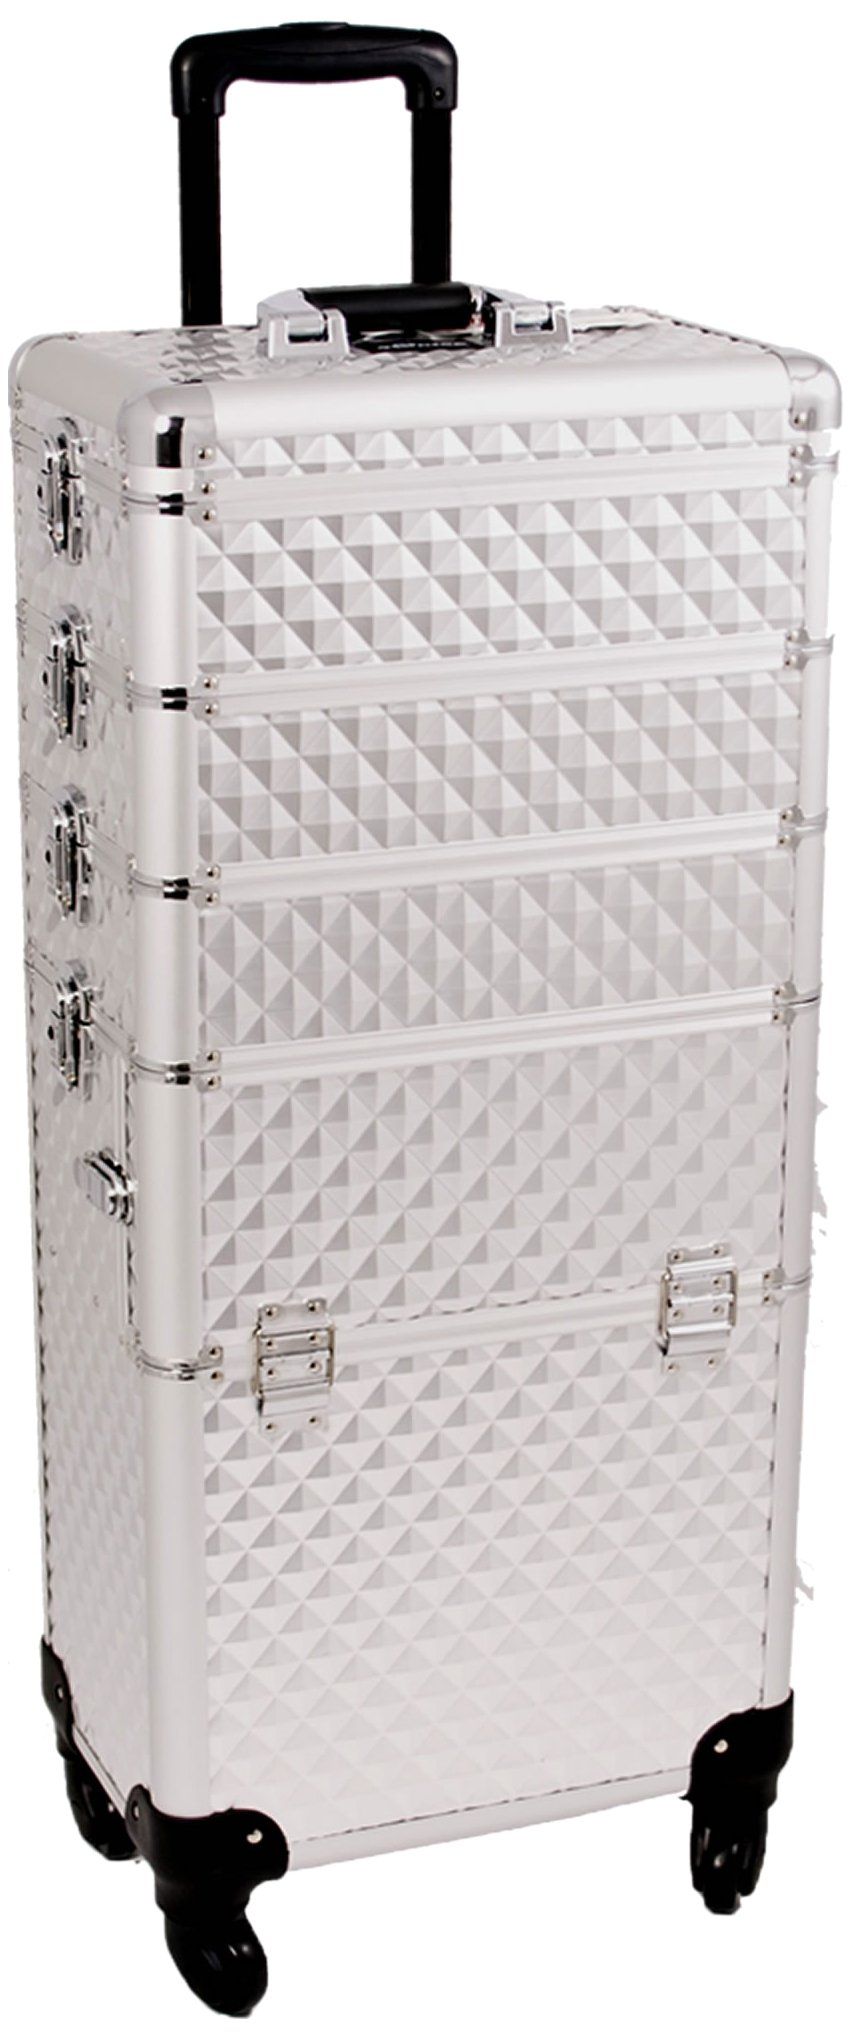 SUNRISE Makeup Case on Wheels 4 in 1 Professional Organizer I3361 Aluminum, 3 Stackable Trays with Adjustable Dividers, Locking with Mirror, Silver Diamond